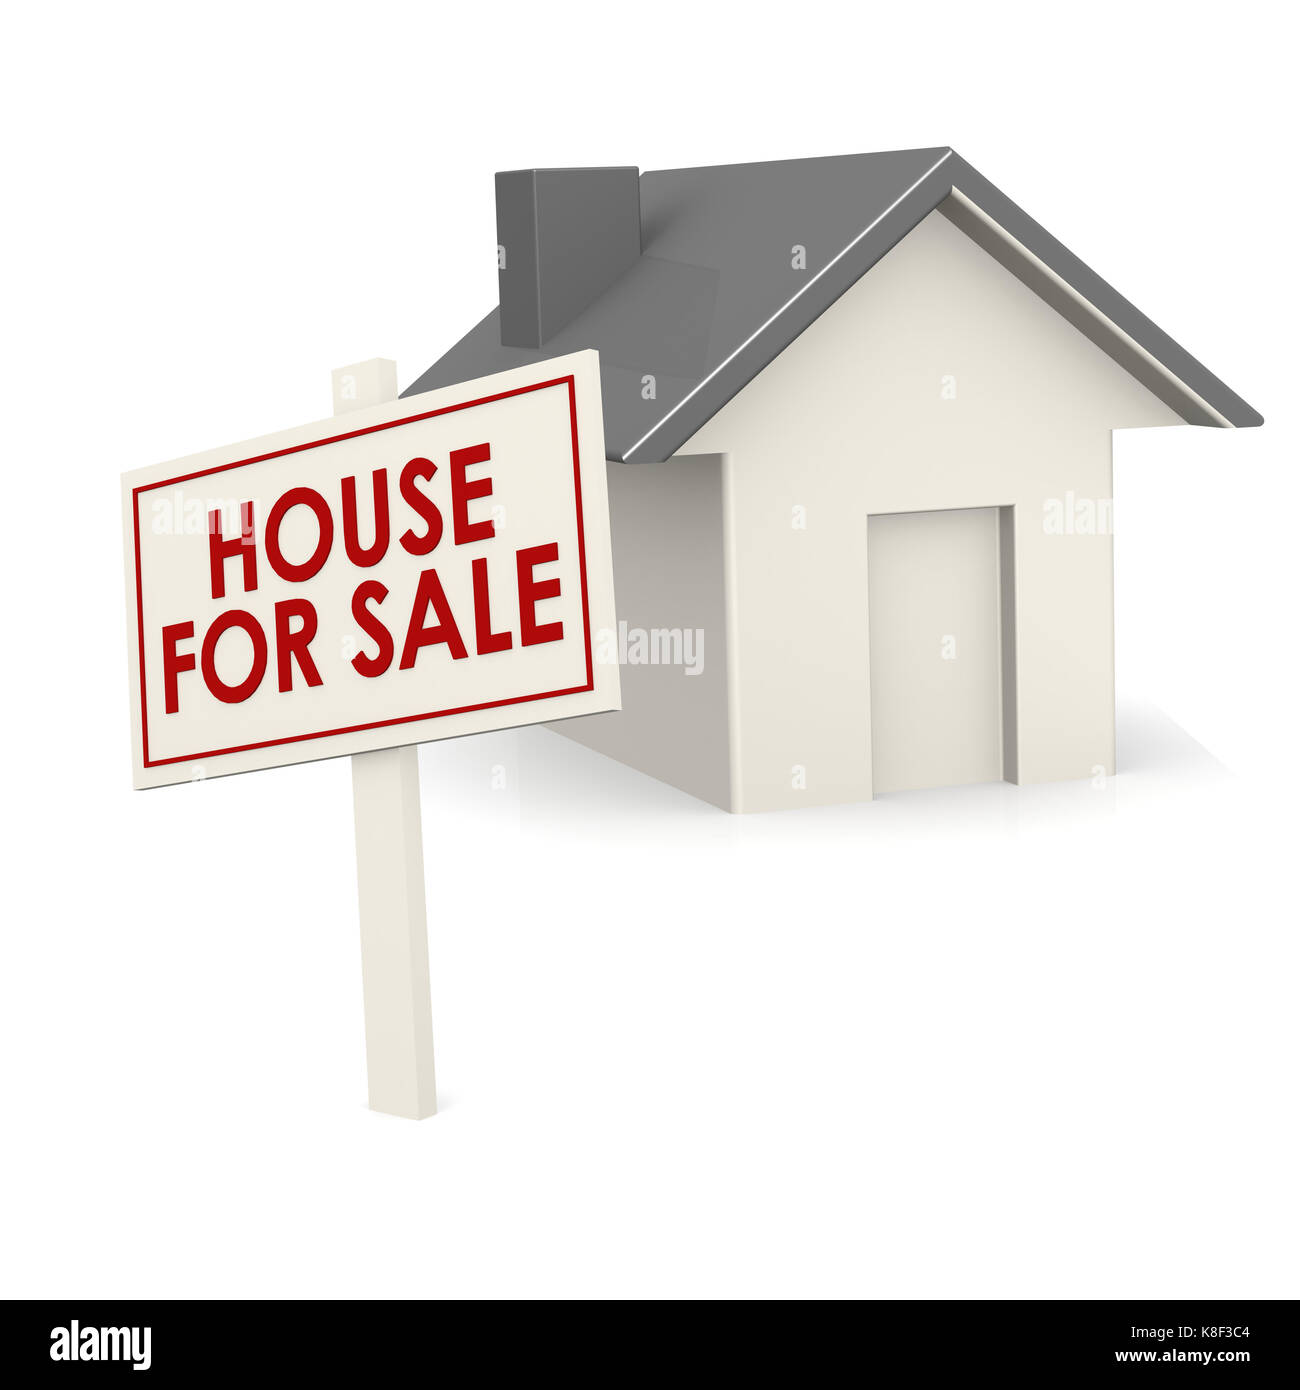 House for sale banner with house - Stock Image